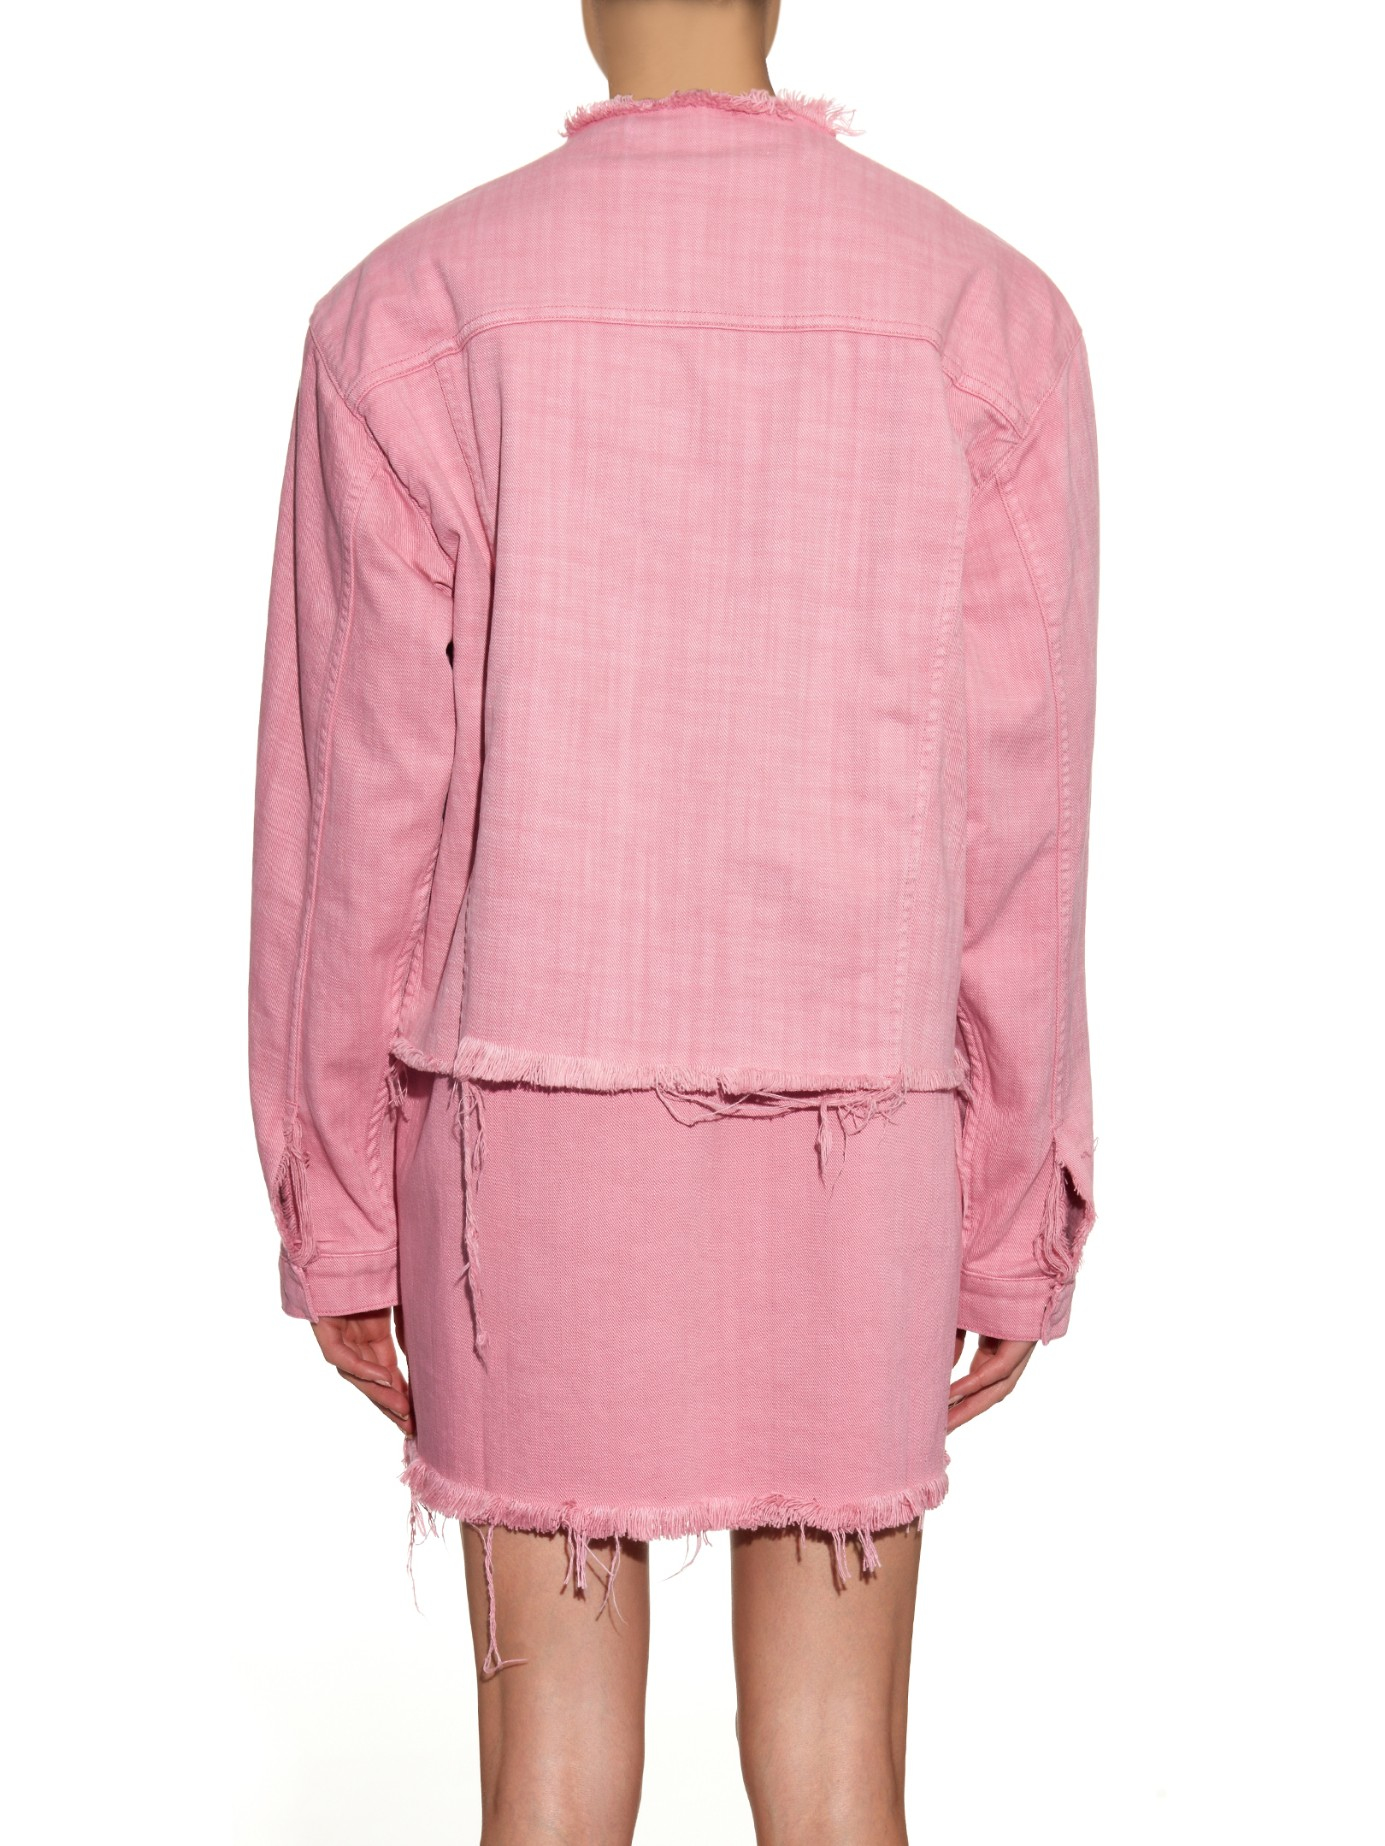 Marques'almeida Frayed Denim Jacket in Pink | Lyst